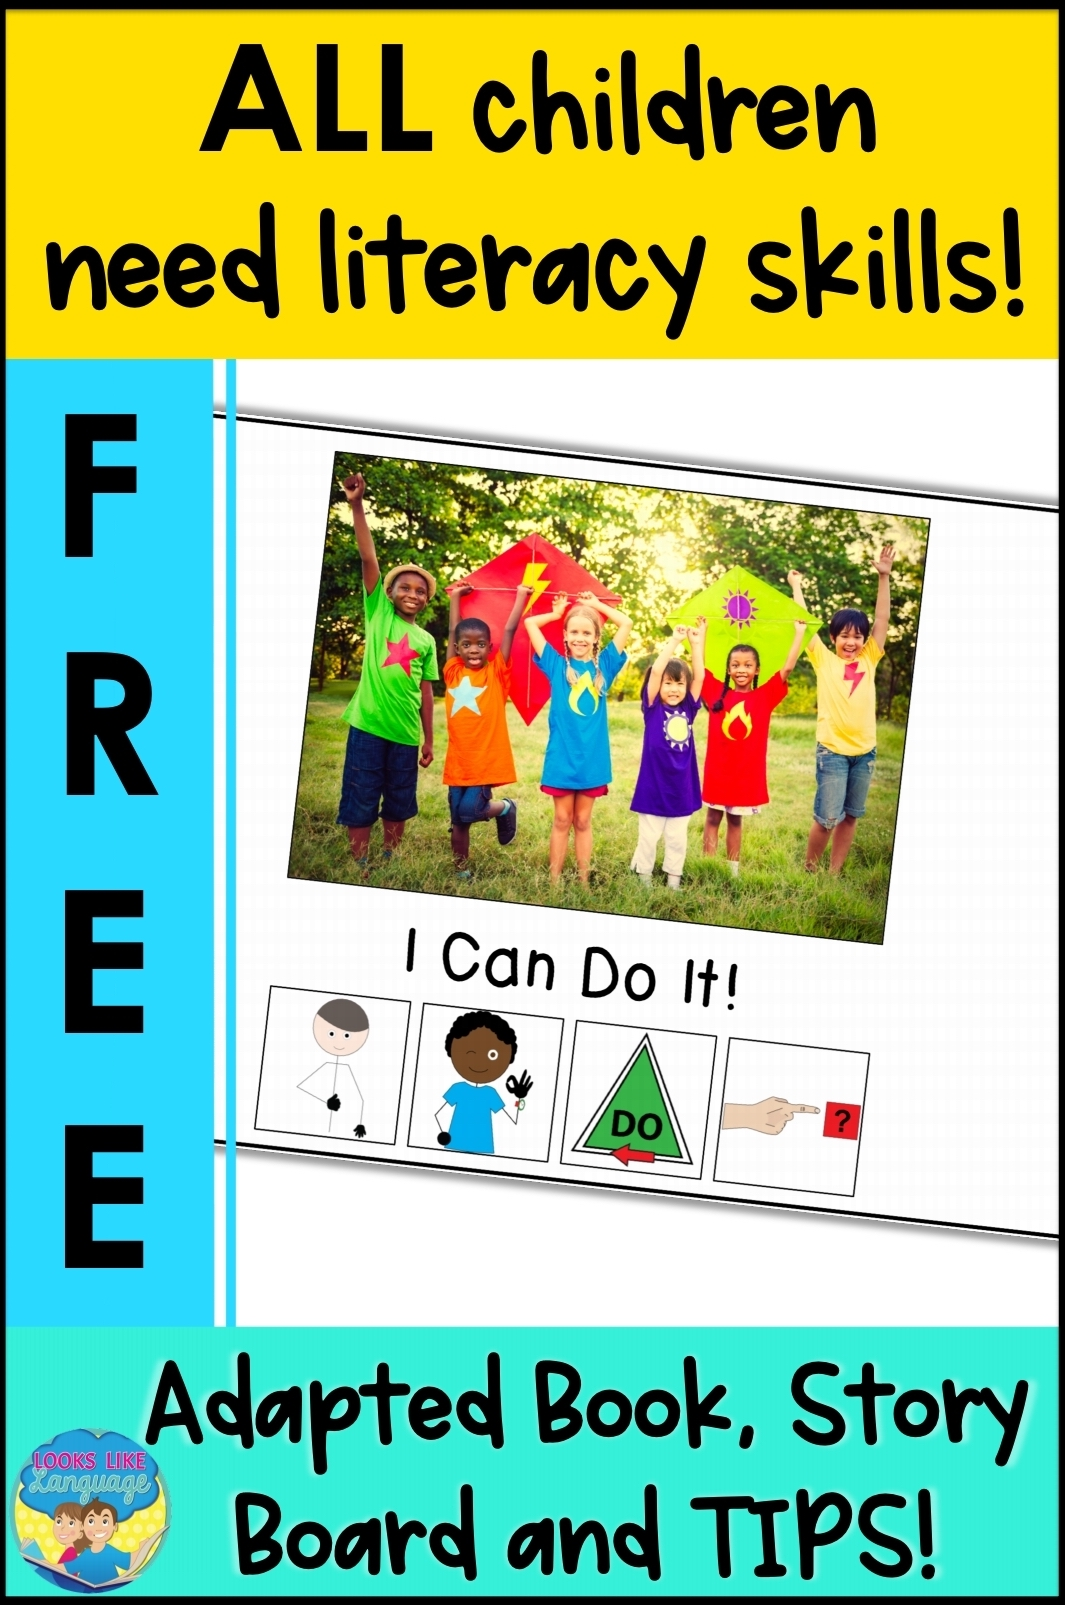 free download, adapted literacy skills, speech therapy